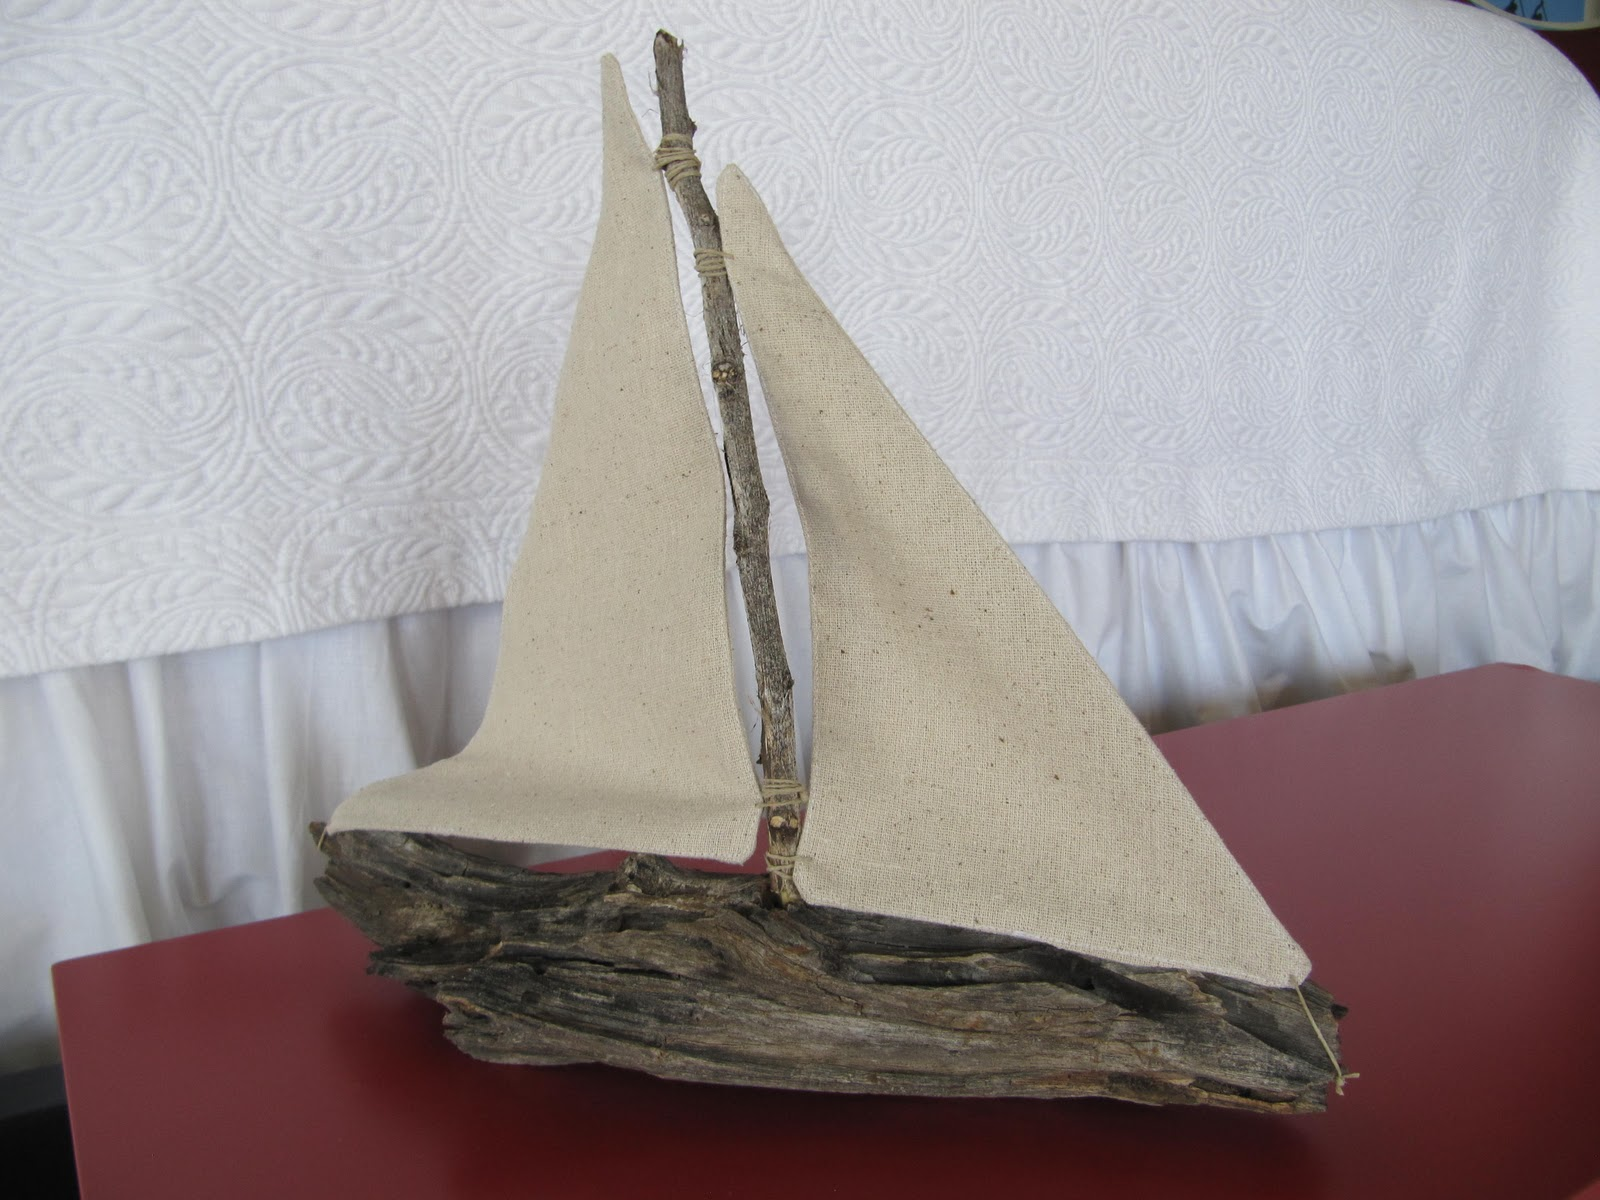 Laurie 39 s projects driftwood sailboat tutorial for Diy driftwood sailboat